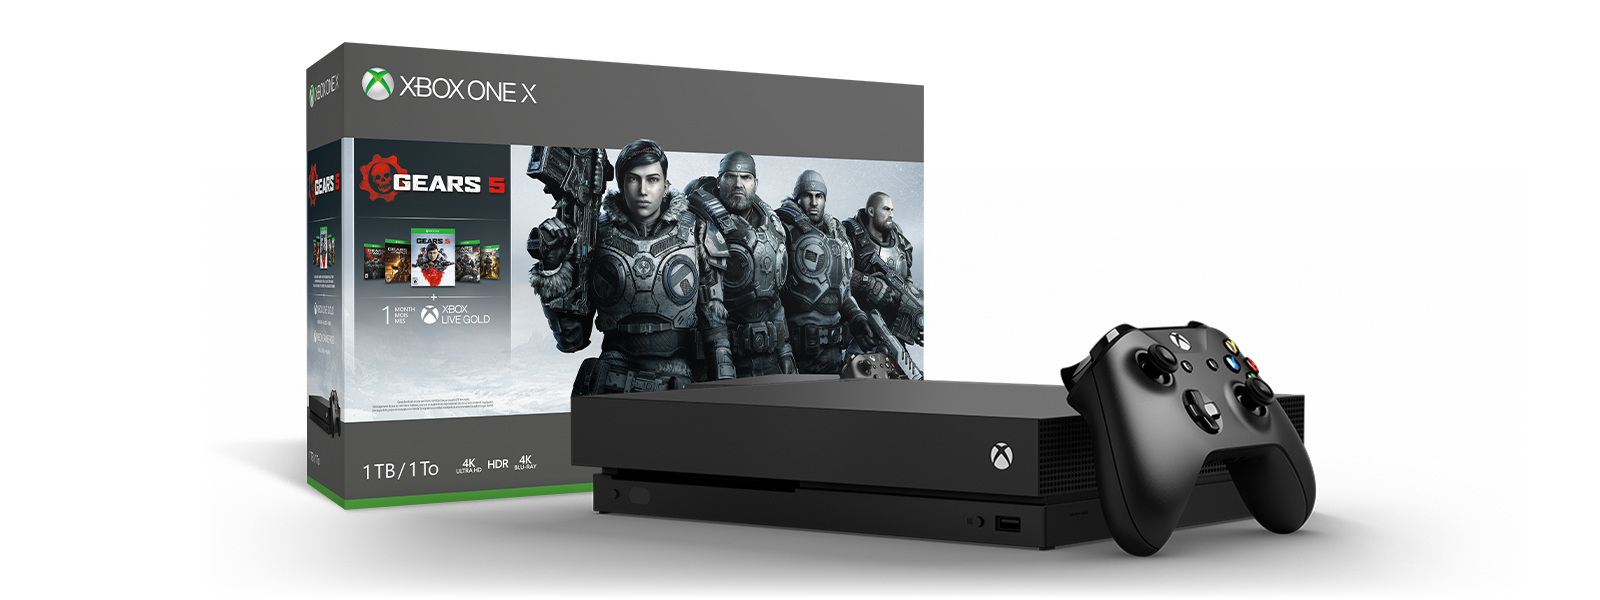 Xbox One X Gears 5 Bundle product box and Xbox One X